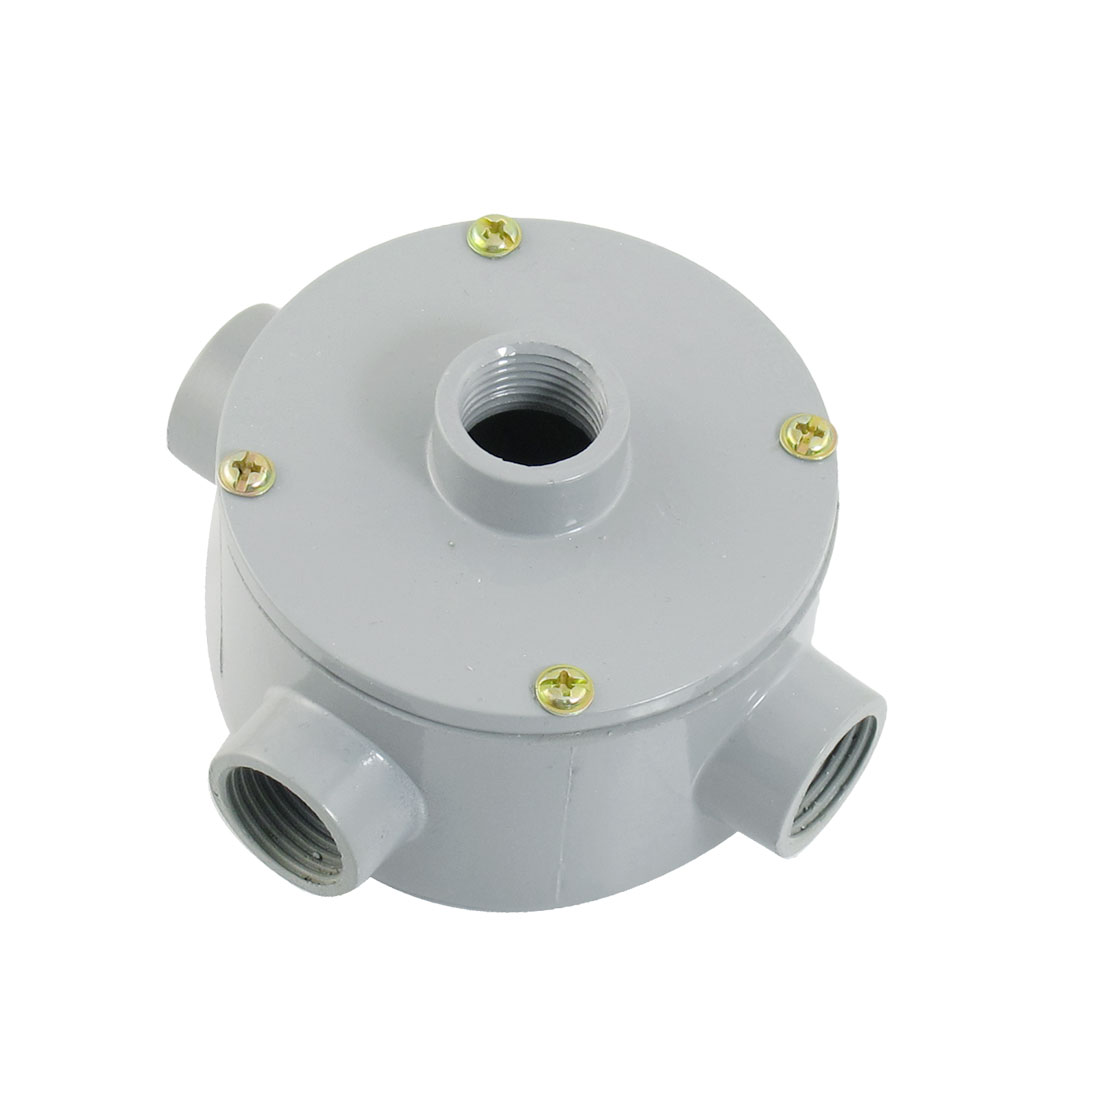 G1-2-Thread-Four-Holes-Conduit-Wiring-Round-Metal-Junction-Box